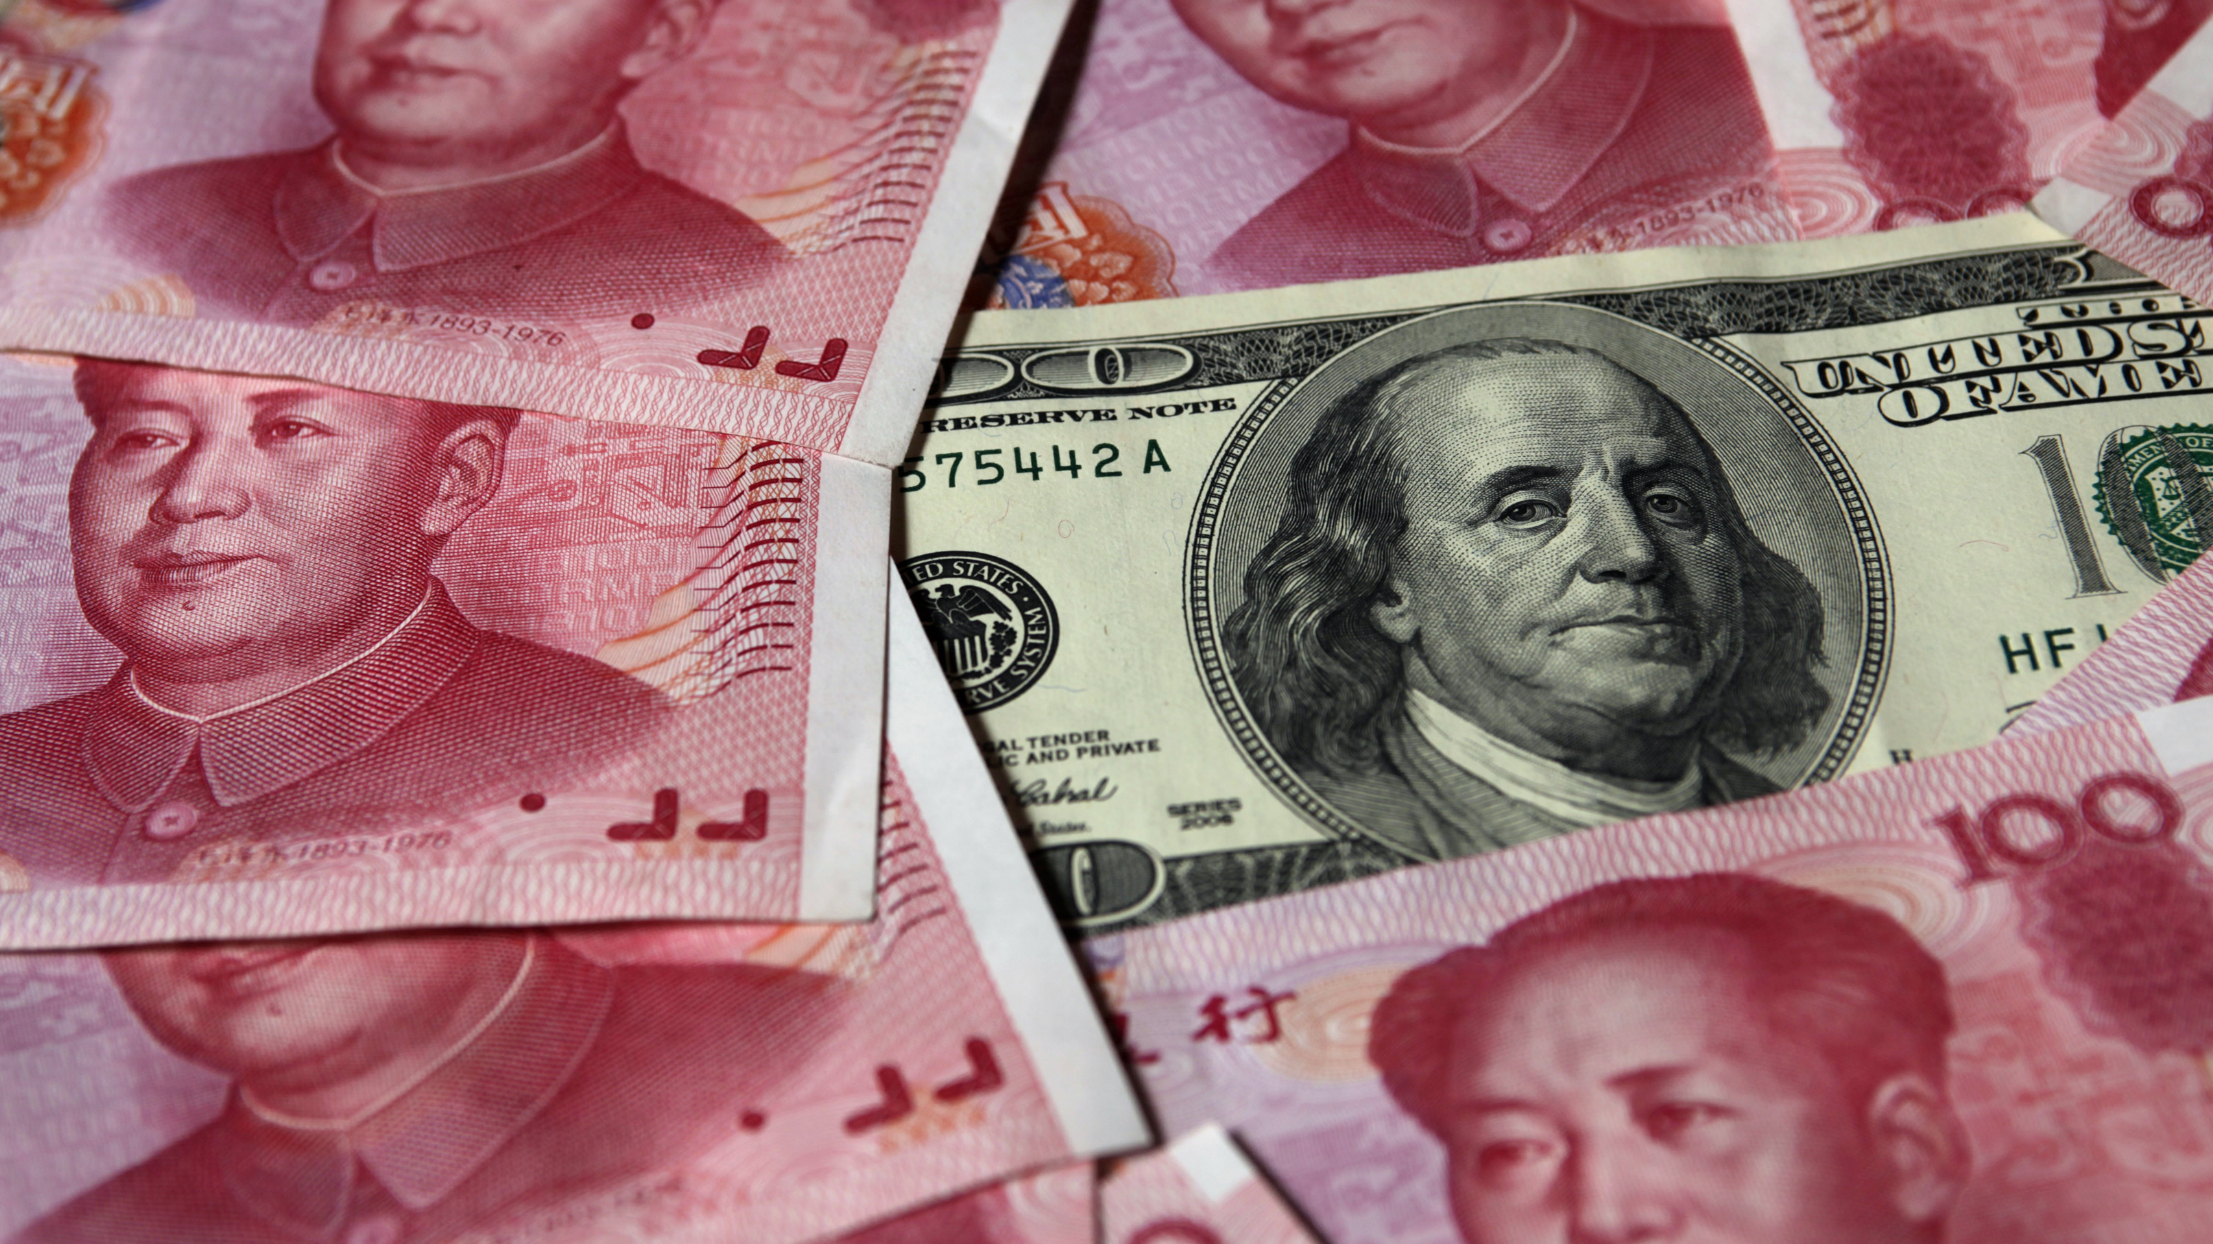 A U.S. $100 banknote is placed next to 100 yuan banknotes in this picture illustration taken in Beijing October 16, 2010. The United States fired the first shot in the currency war and the rest of the world must be on guard for its deliberate strategy to devalue the dollar, a Chinese economist said in an official newspaper on Thursday. REUTERS/Petar Kujundzic